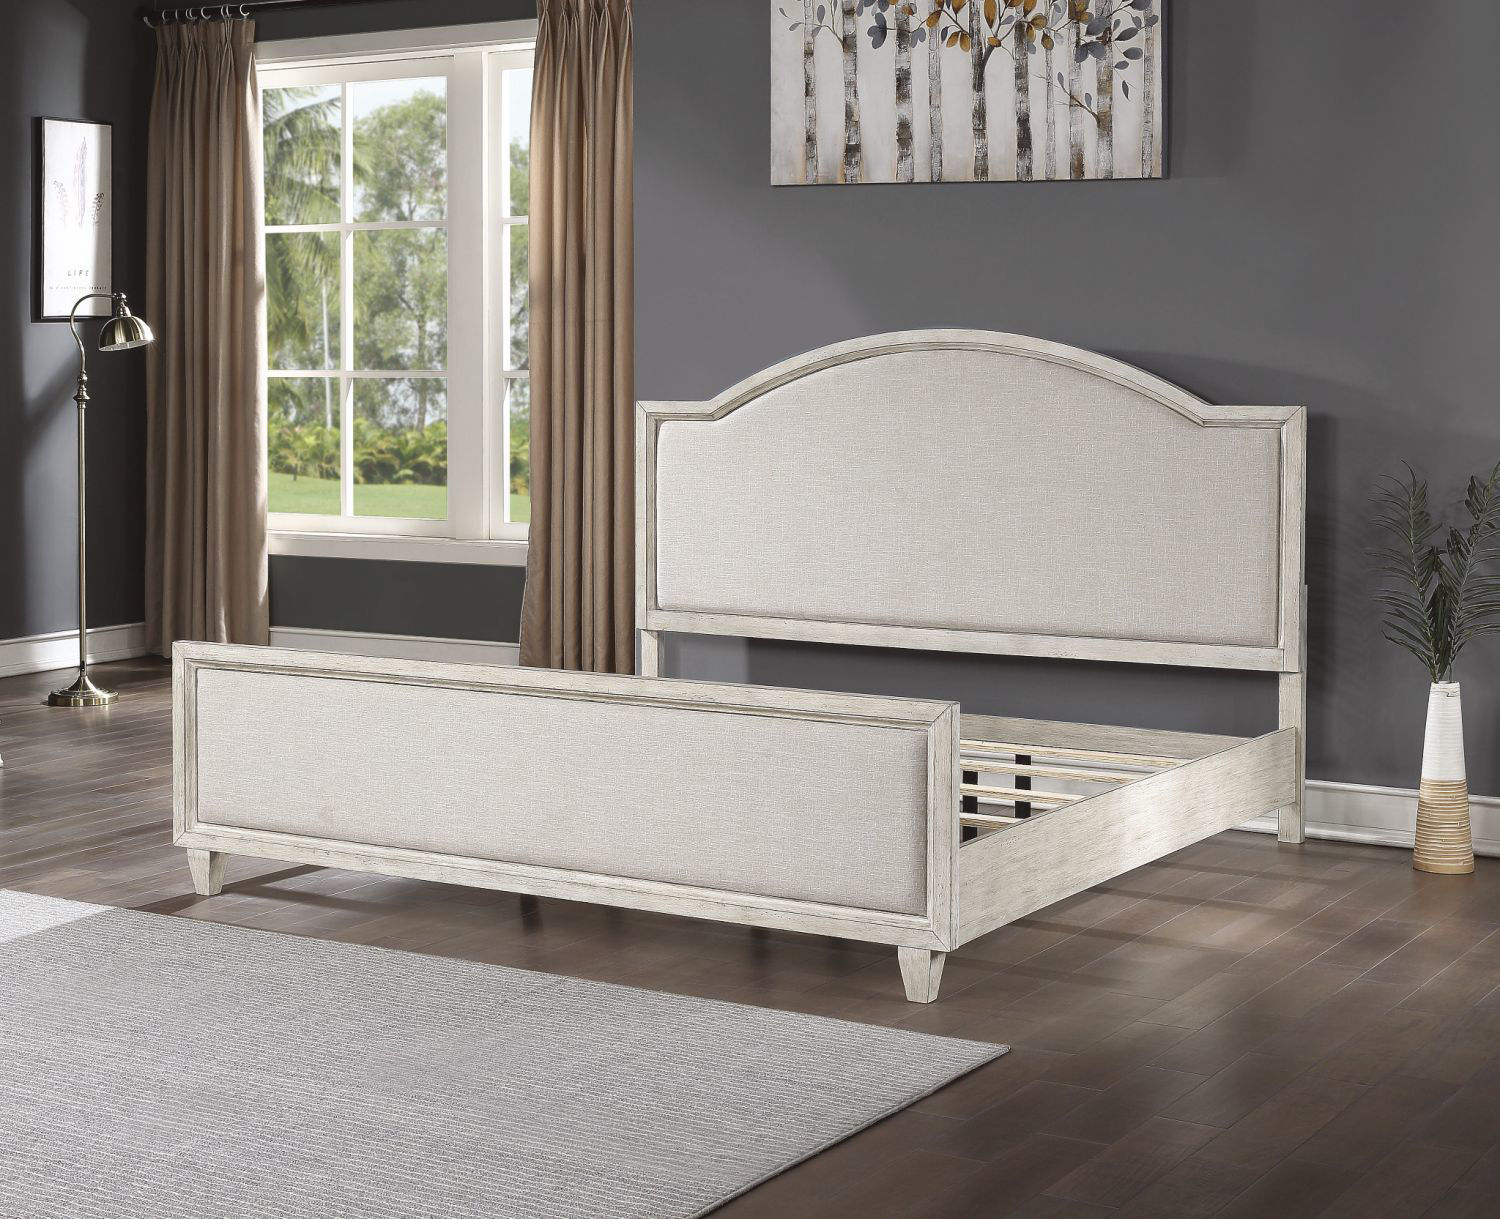 Picture of NEWPORT UPHOLSTERED KING BED